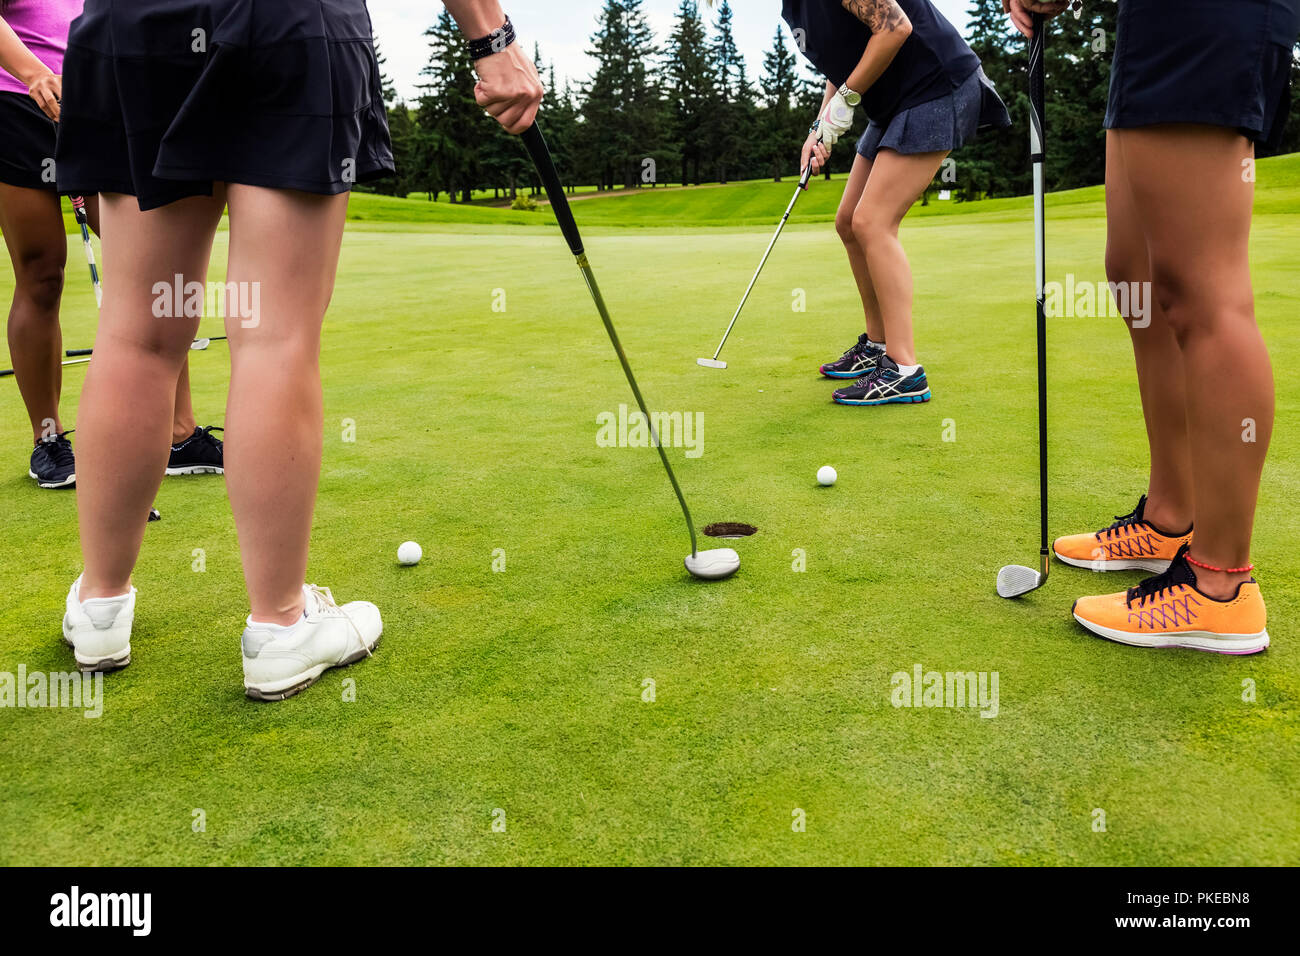 A foursome of female golfers on a putting green taking turns putting using the best ball in a Texas Scramble during a tournament Stock Photo